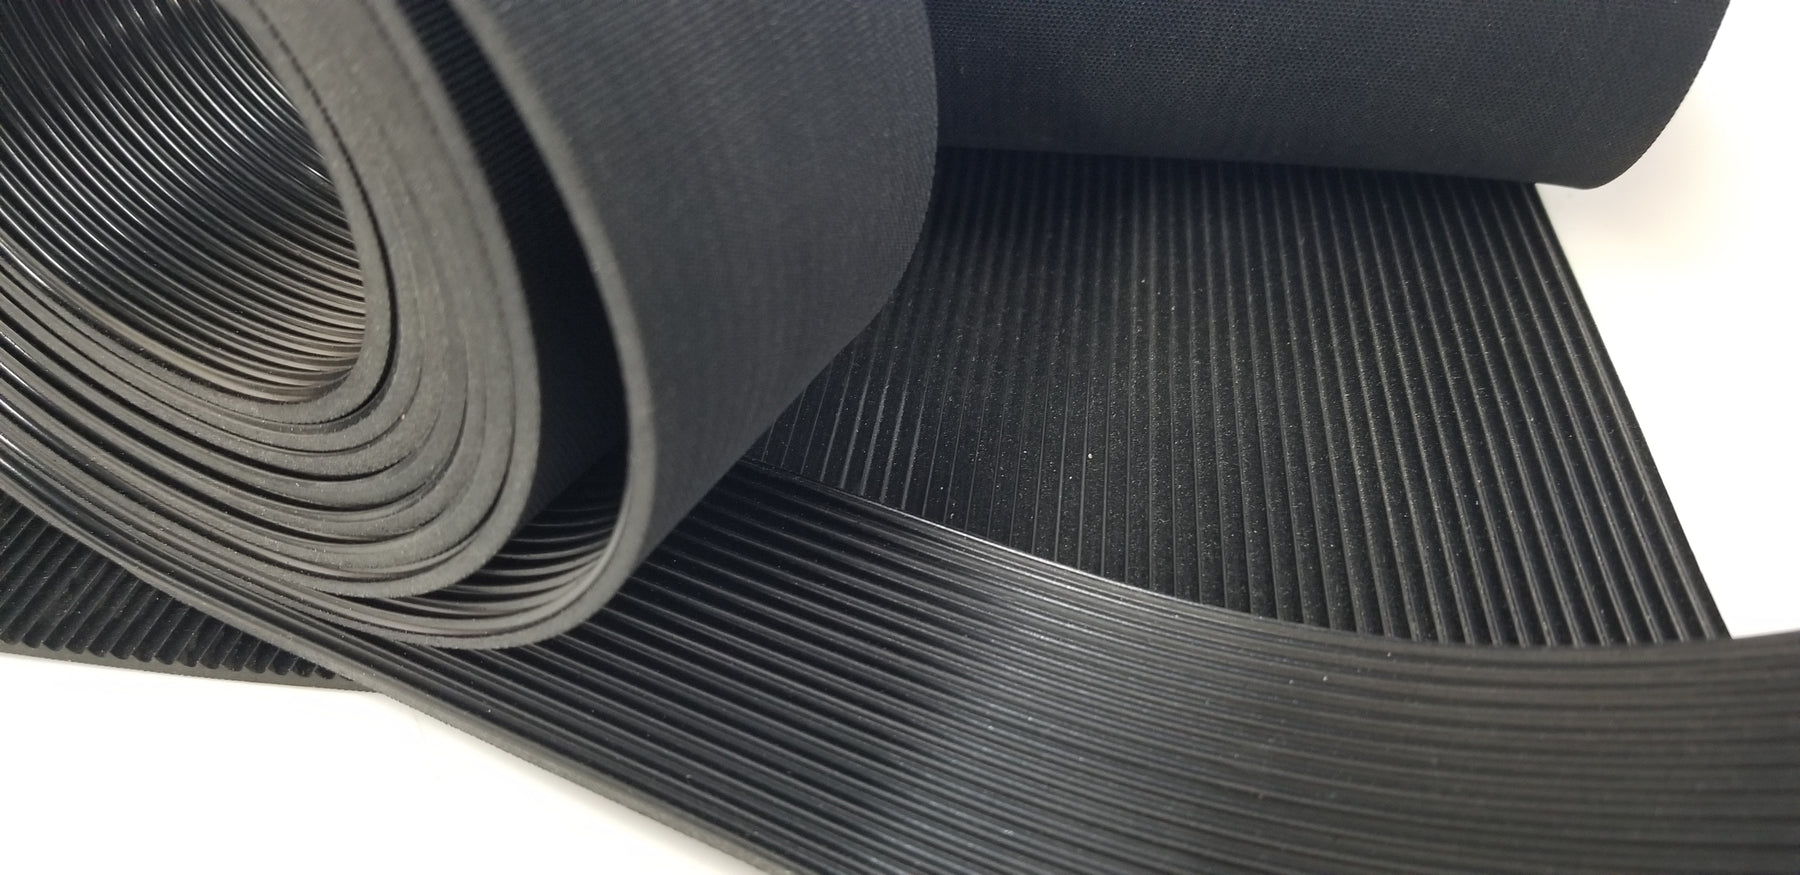 V-Groove Corrugated Matting | Rubber Runner Matting